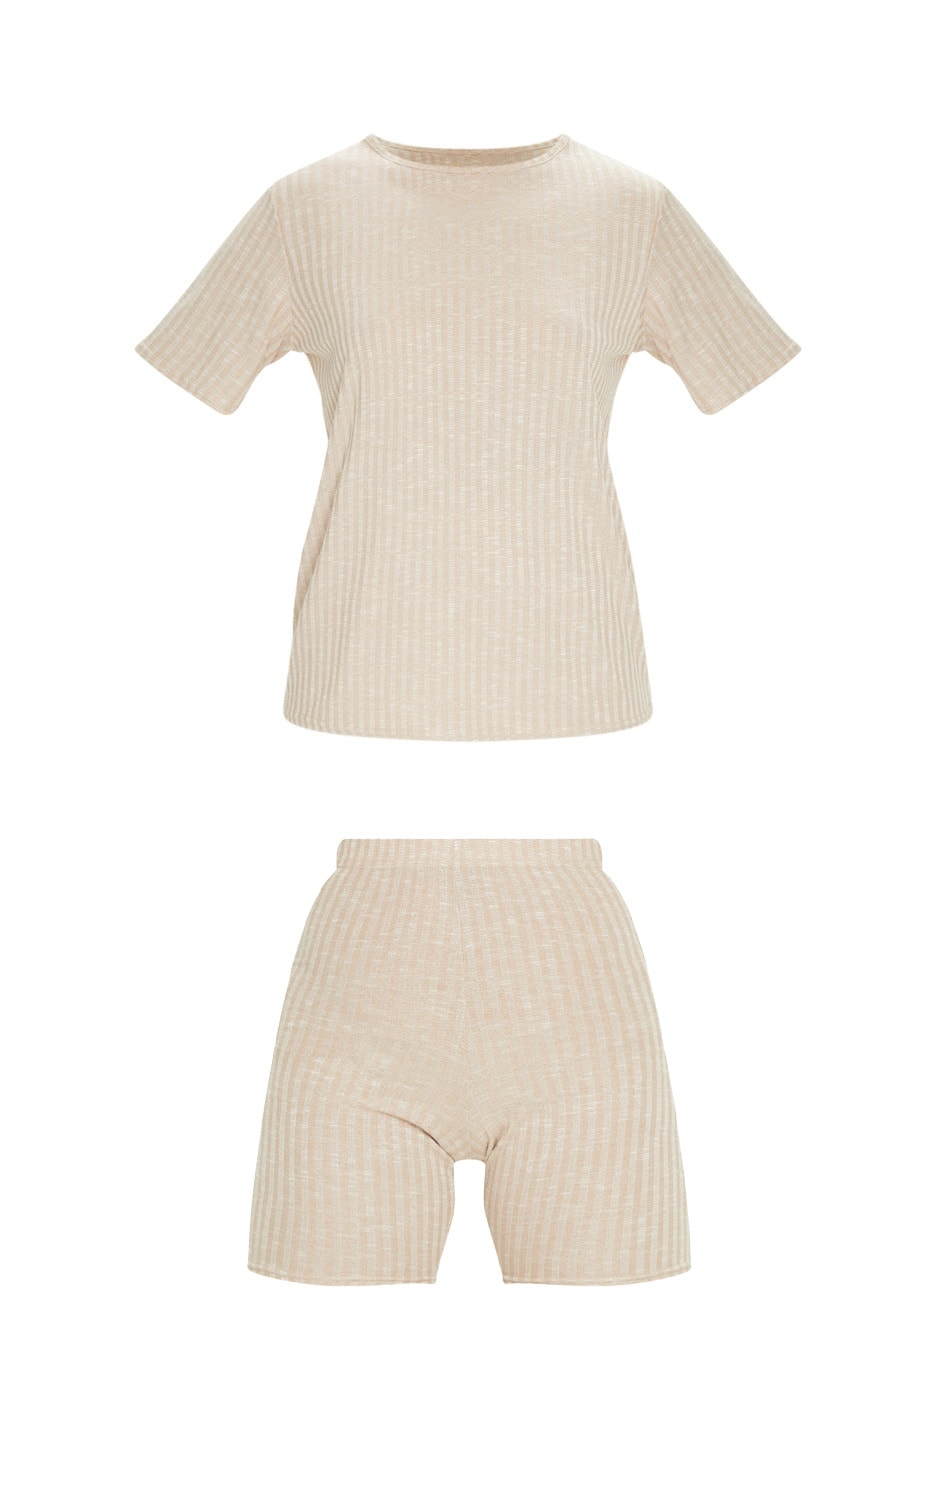 Oatmeal Oversized Knitted Tee And Short Set 5